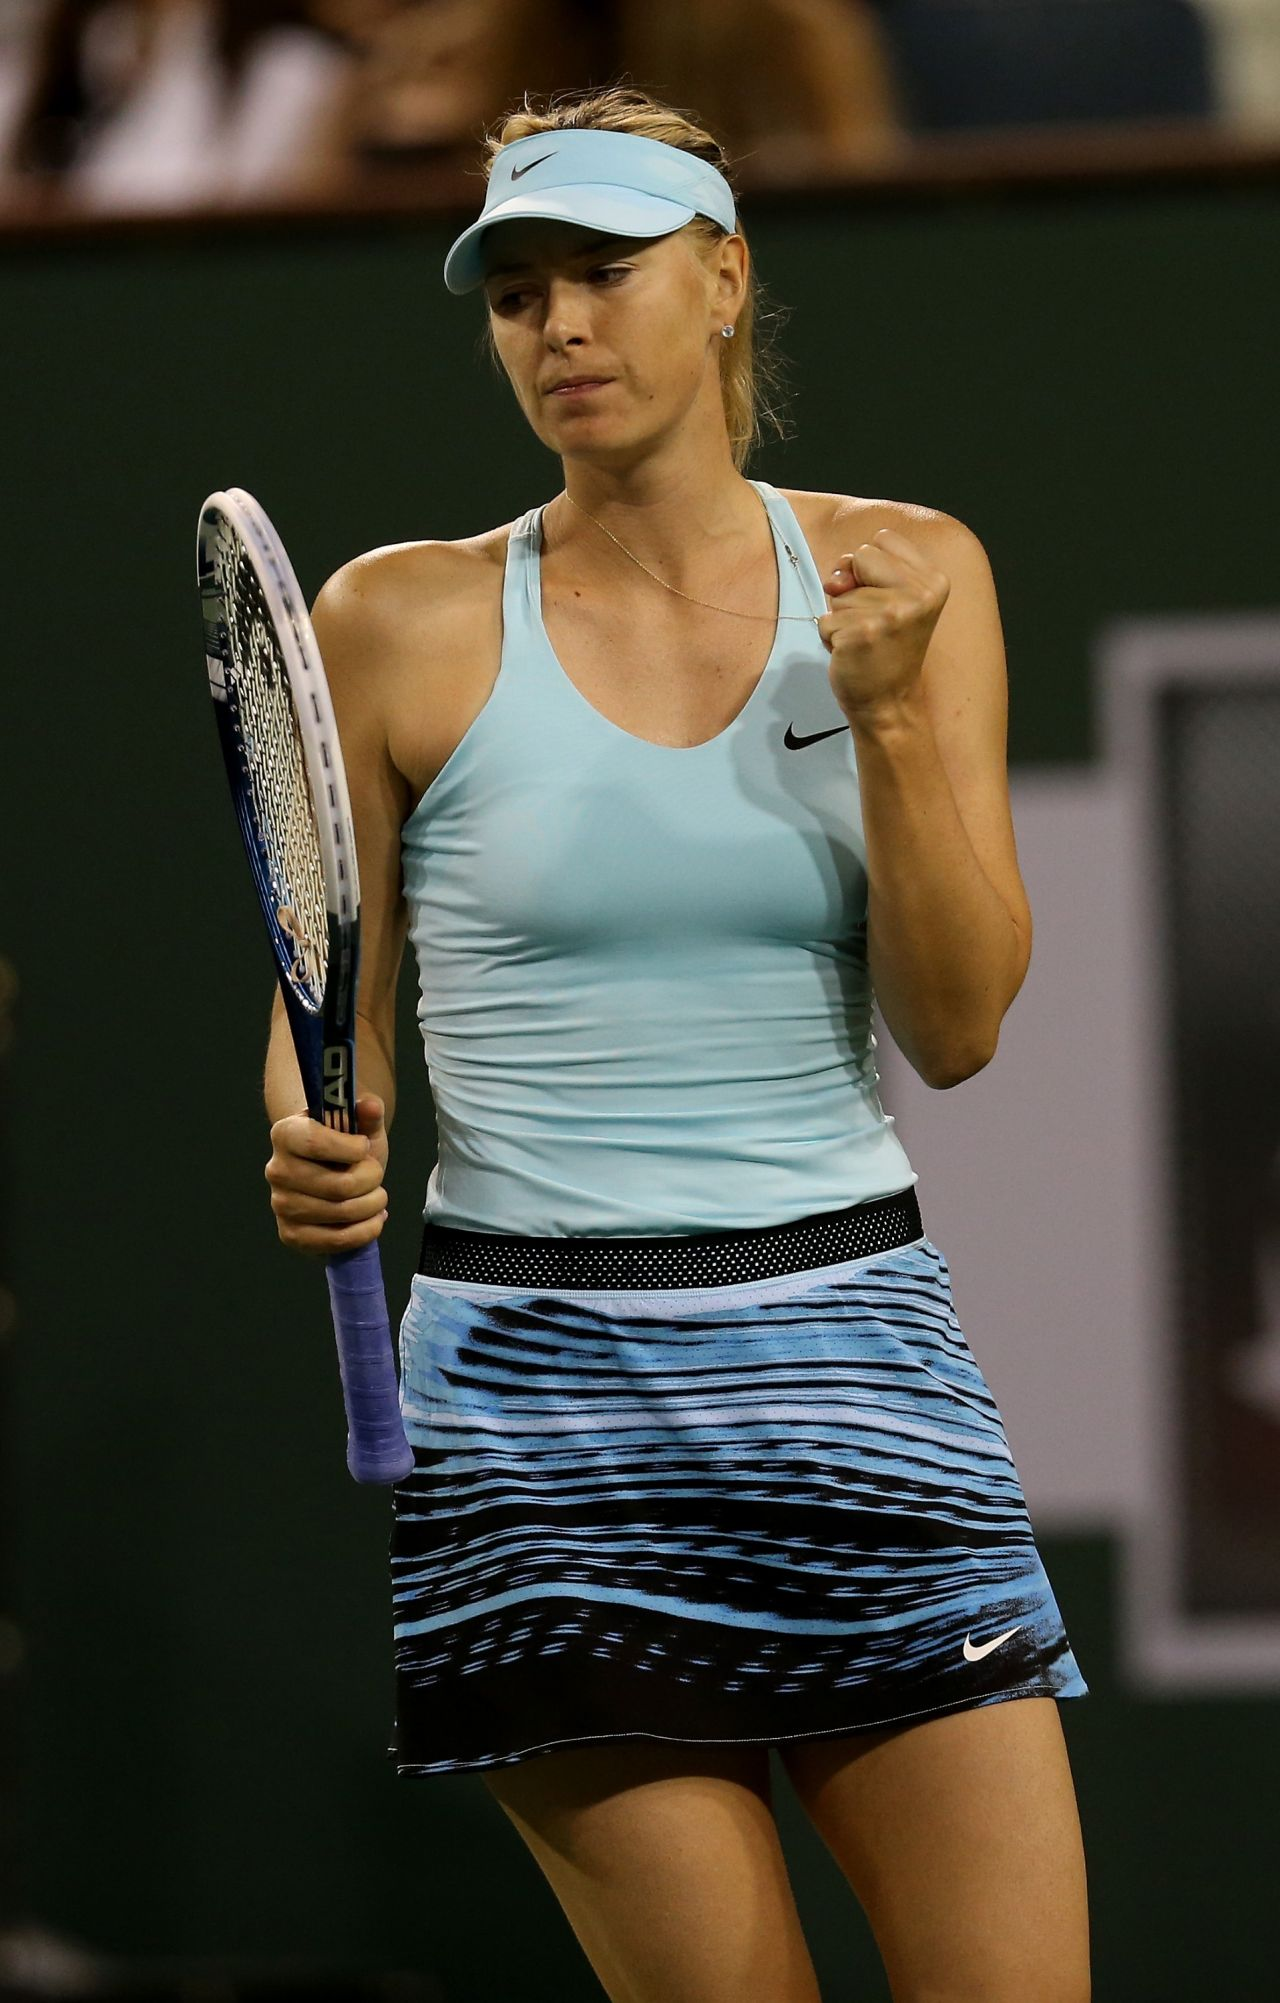 Maria Sharapova - 2014 Indian Wells BNP Paribas (Round 2)